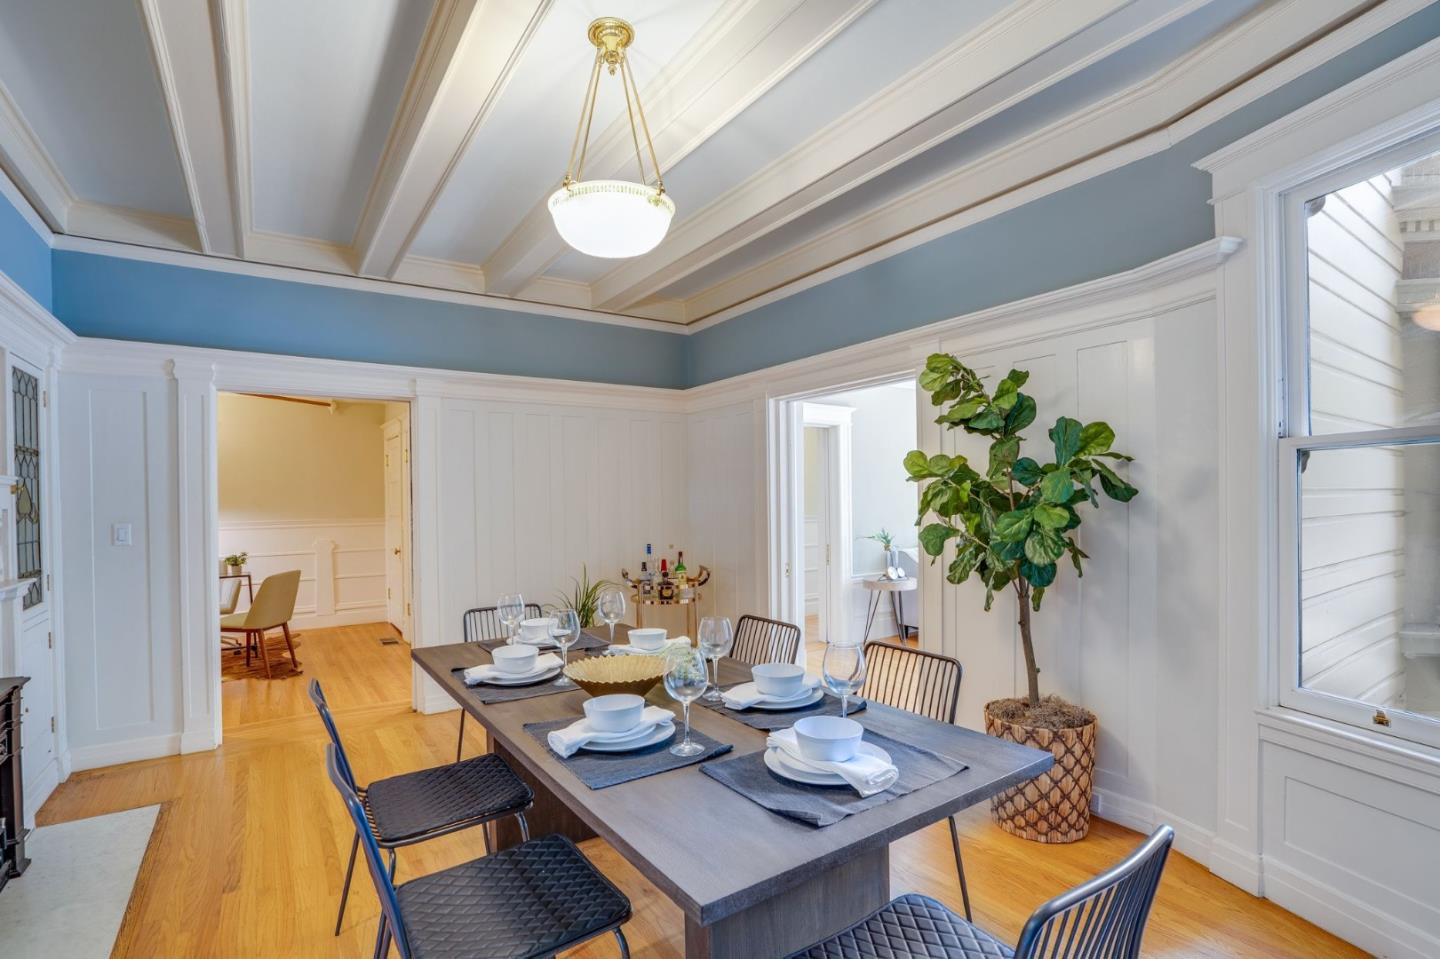 Elegant, Victorian TIC unit in the heart of the vibrant and historic Haight Ashbury district. This exceptional unit boasts 2 generously sized bedrooms, 2.5 bathrooms, and sits in a multi-family home enriched with period details. From its curved bay windows, century-old wainscoting, refinished light fixtures, and Corinthian columns that restored its Victorian look, this gem proves itself to be a turn of the century charmer. Rooms are boasting with large foyer, formal living and dining rooms with timeless fireplaces and mirrored mantles. Chef's kitchen with high-end stainless steel appliances, abundant cabinetry, and granite countertops. Hardwood floors, classic crown molding, wainscoting, and restored antique lighting throughout. Relaxing shared yard with garden and patio. Enjoy a prime location, just steps from revered San Francisco landmarks, prime shopping, and a growing number of popular restaurants. Golden Gate Park, Buena Vista Parks, Cole Valley, NoPa, and main freeways nearby!